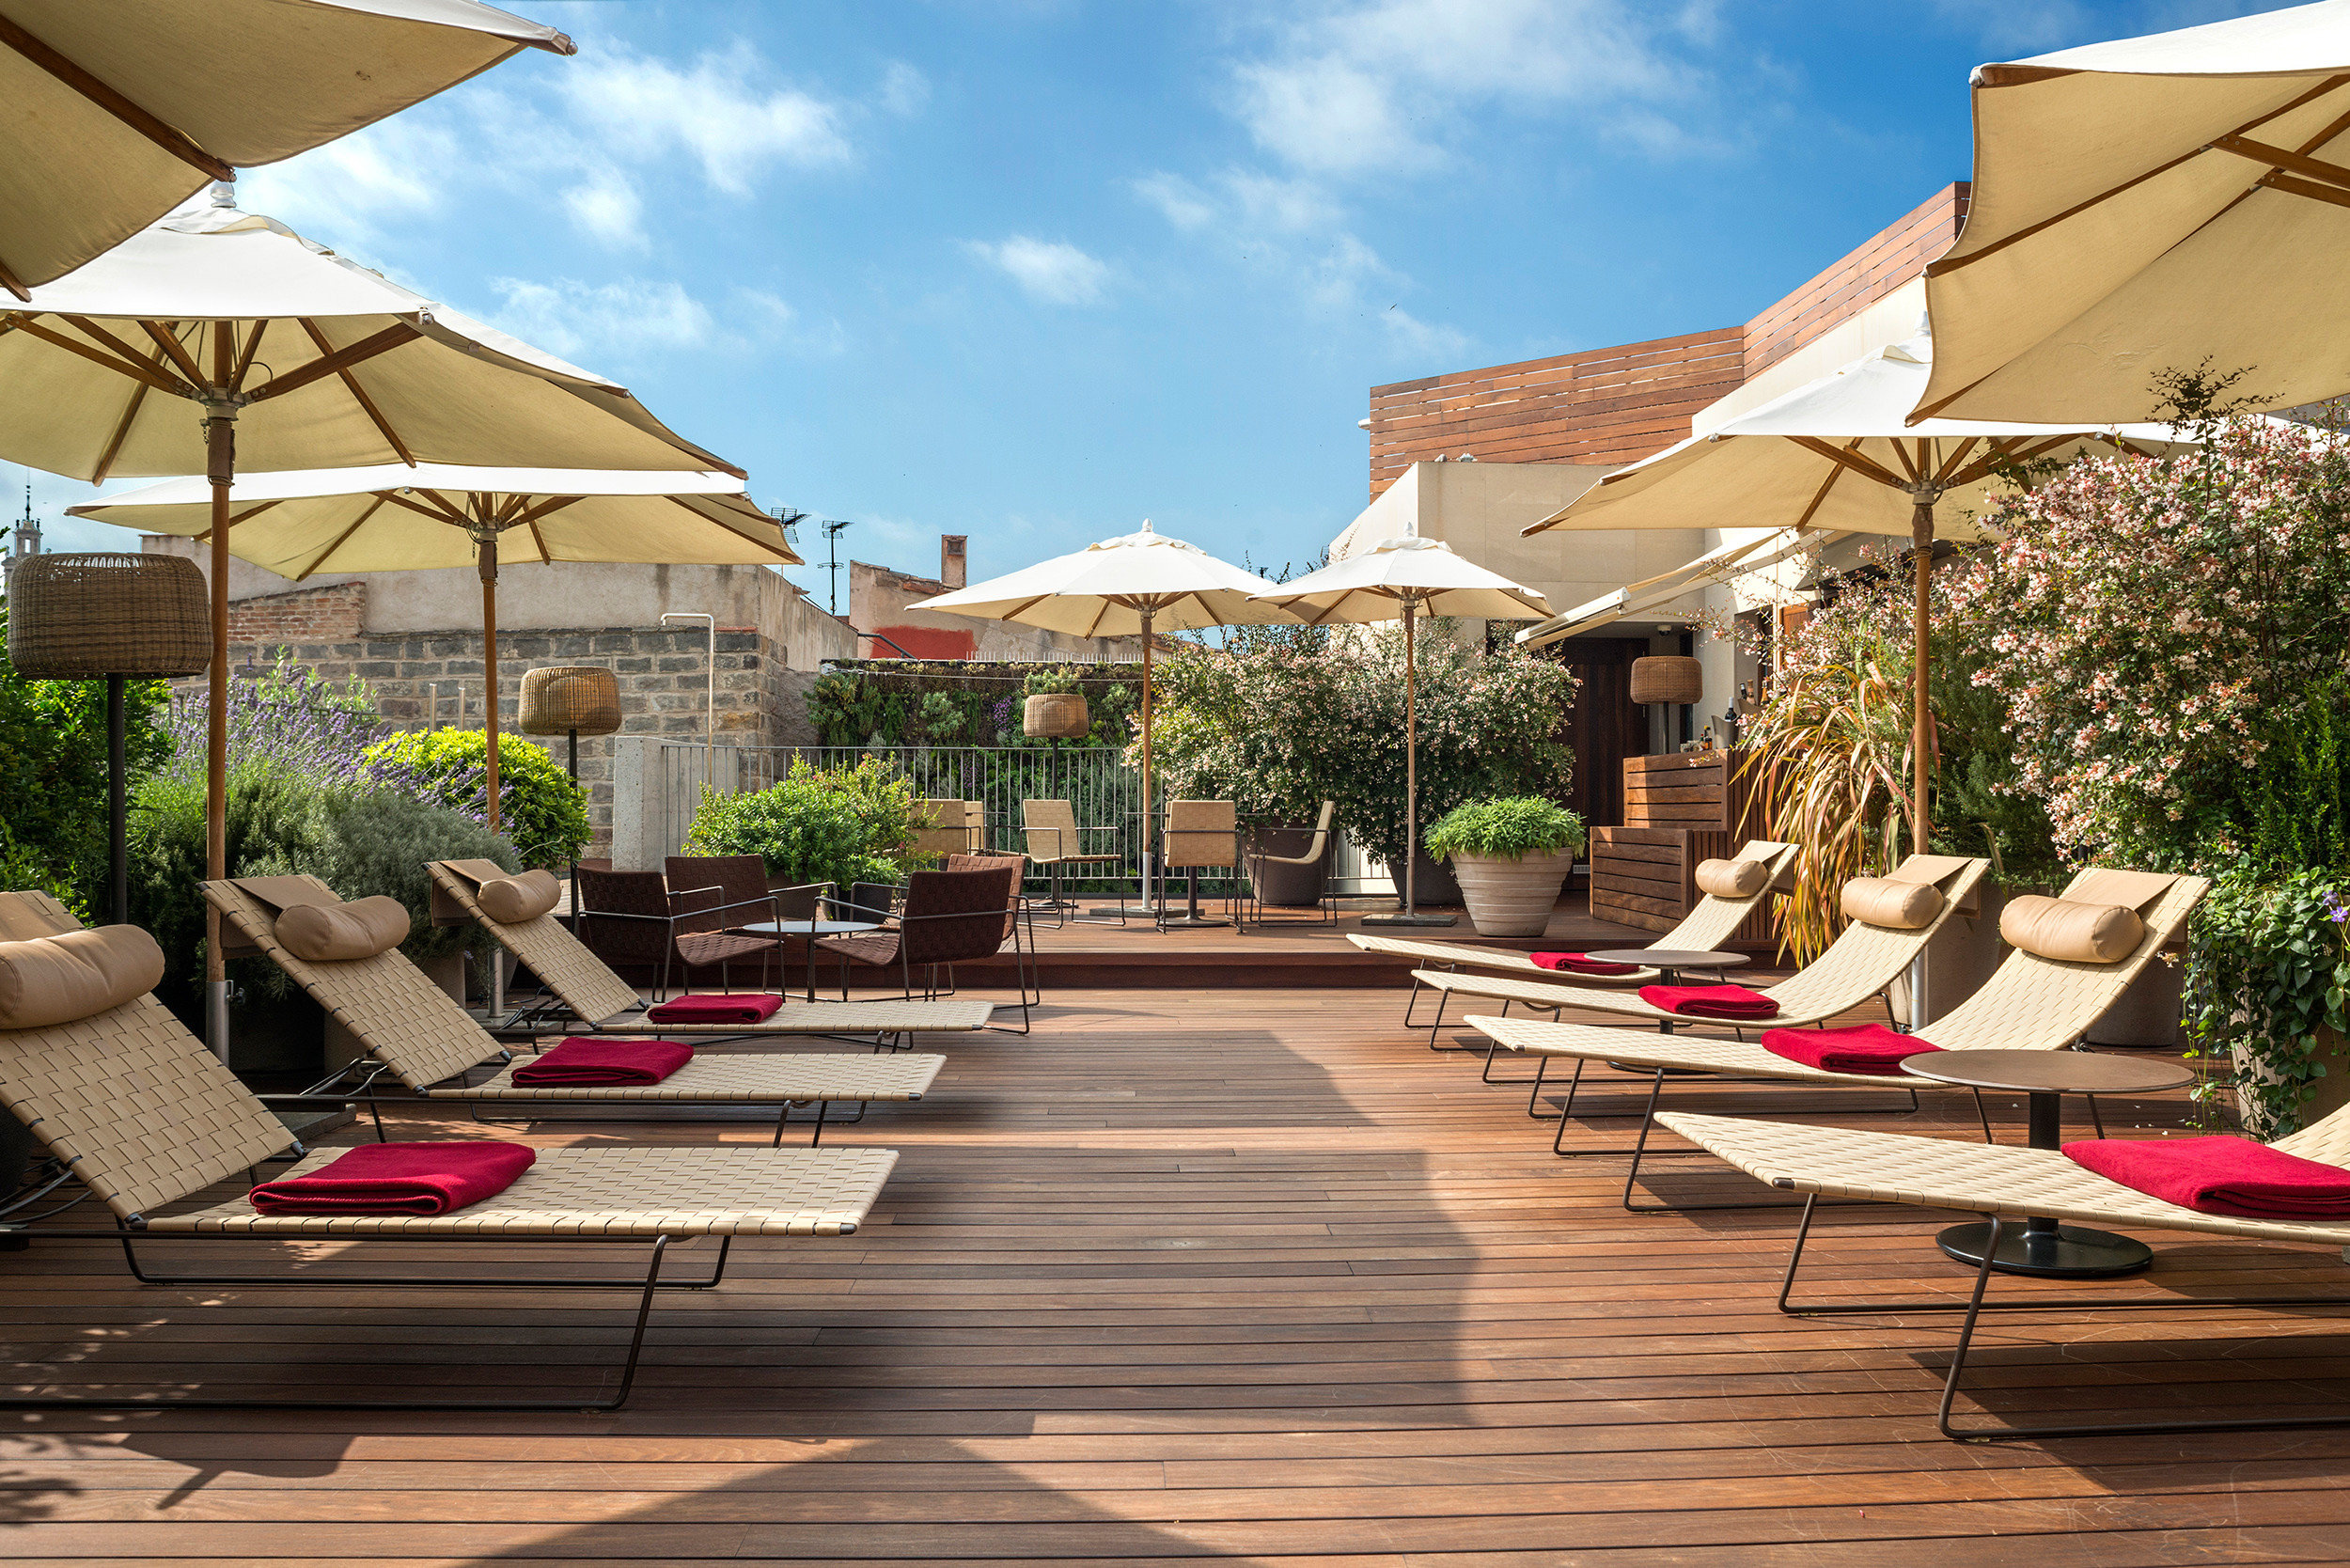 Boutique Boutique Hotels City Deck Hip Hotels Luxury Modern Rooftop sky building leisure Resort outdoor structure backyard home Courtyard swimming pool